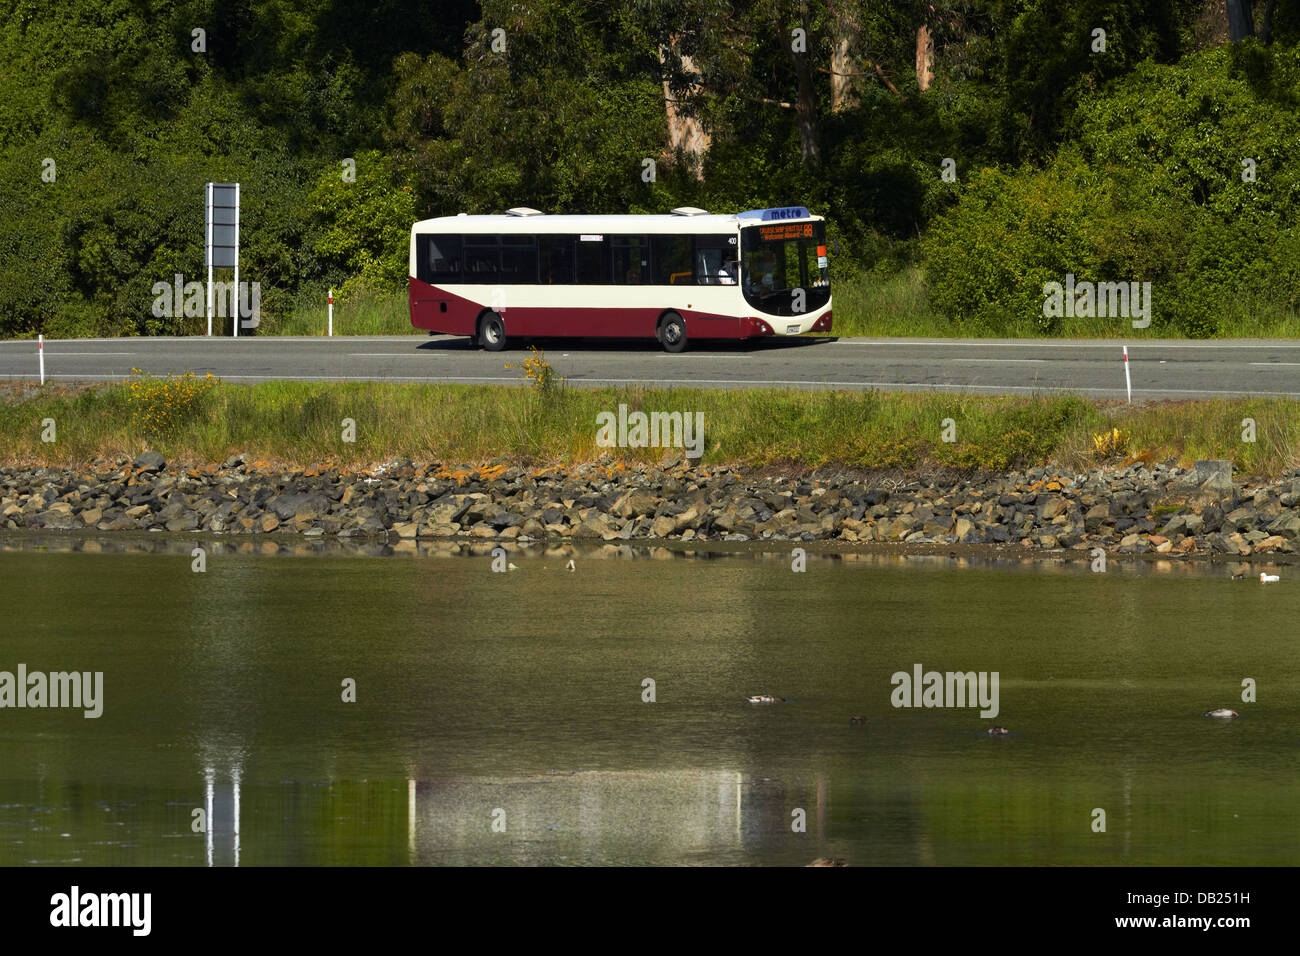 Bus beside Otago Harbour near Port Chalmers, Dunedin, Otago, South Island, New Zealand - Stock Image